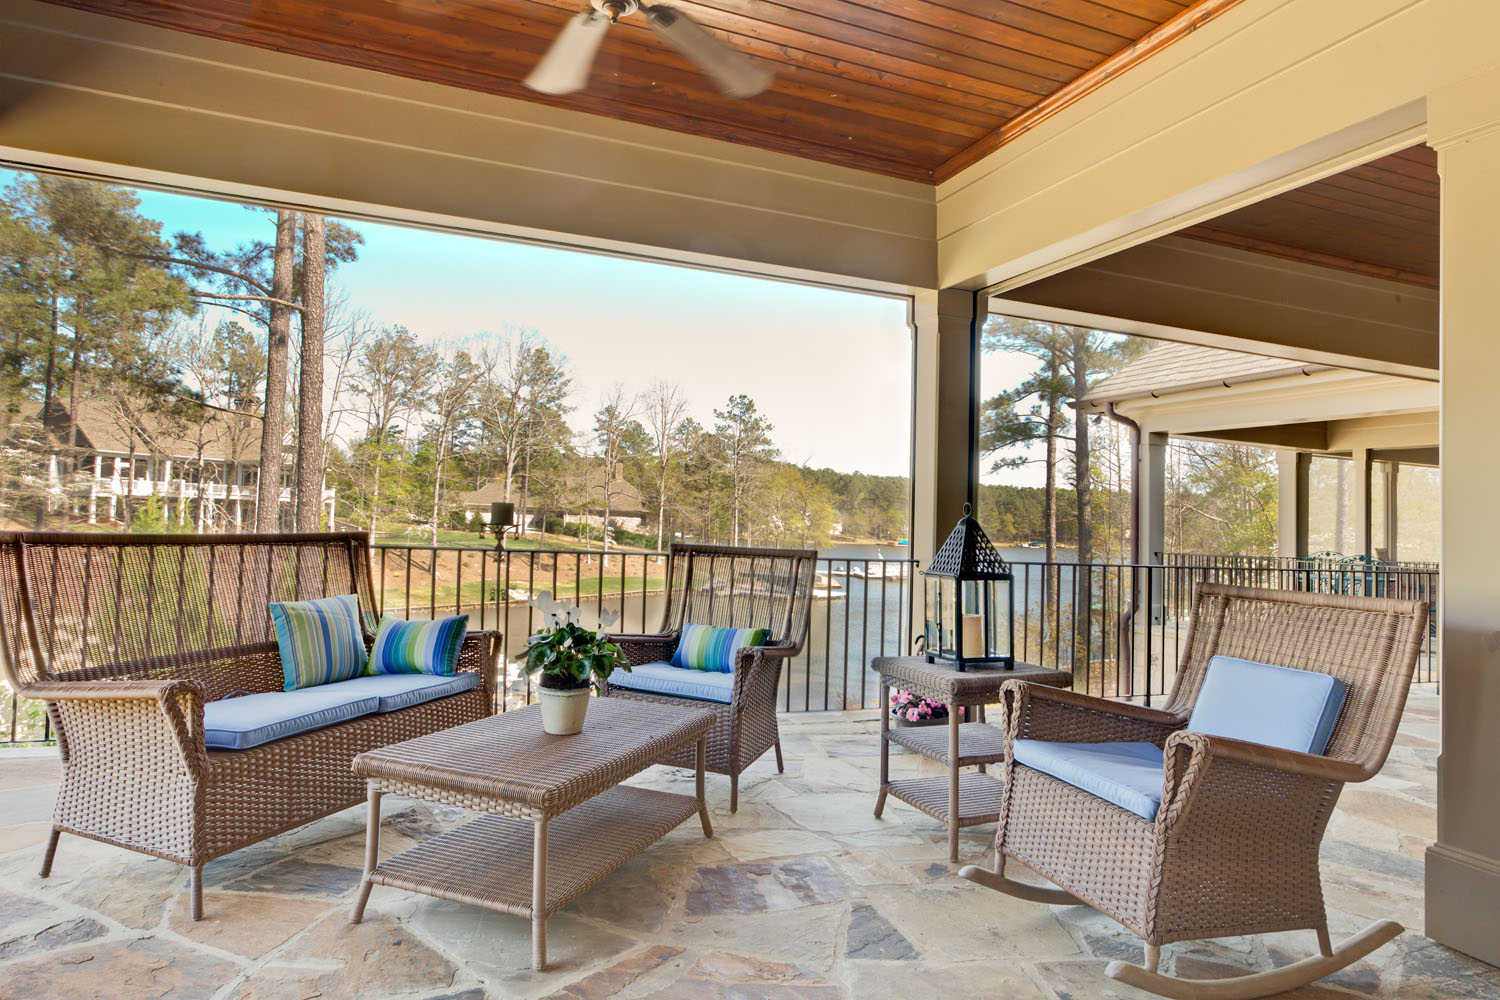 In this porch off a master suite makes living outdoors easy with retractable screens that can be put in place to protect the couple from insects, or on bugless days be opened to allow unobstructed views.